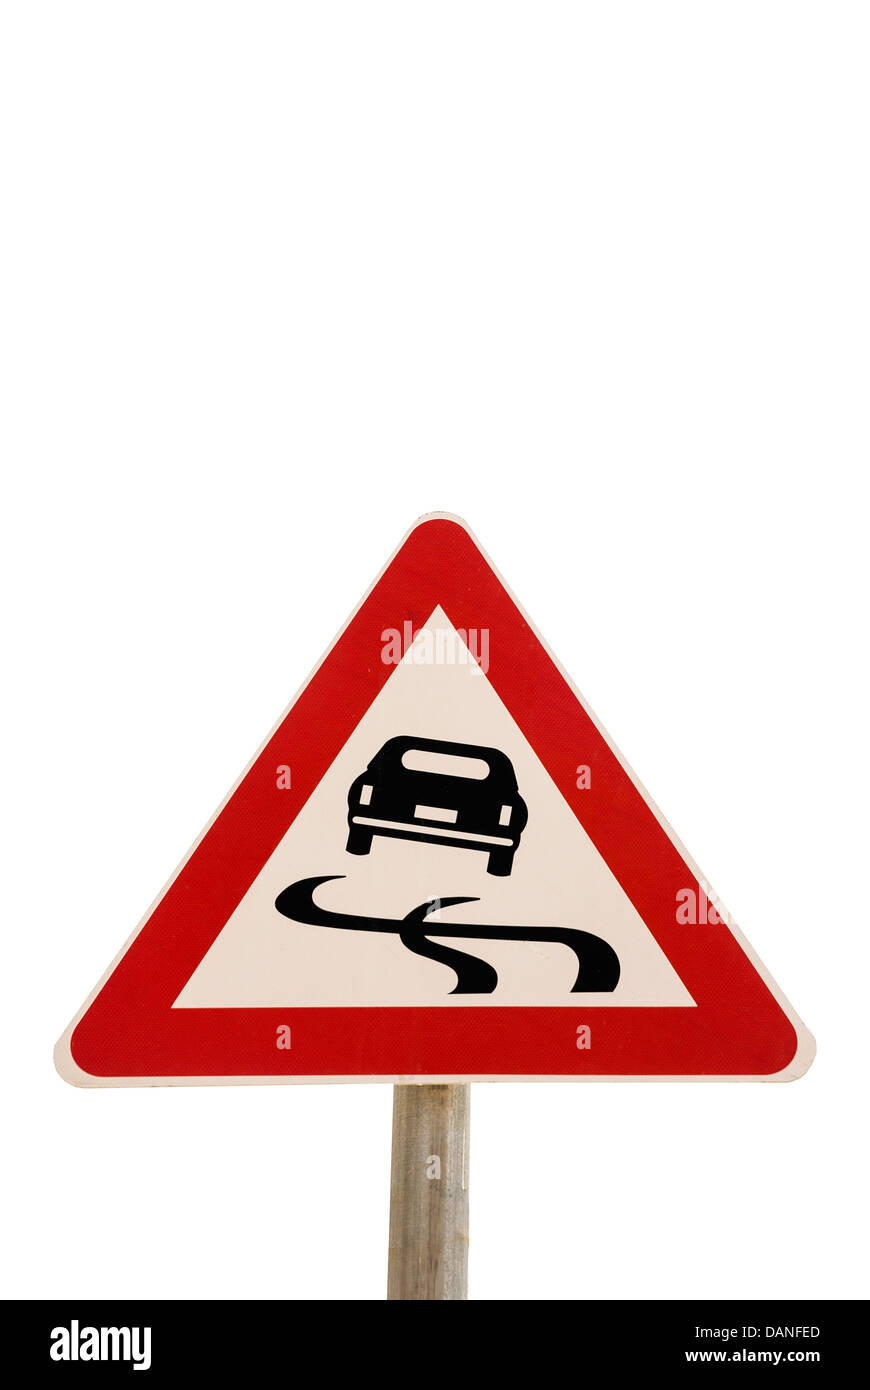 Road sign. Warning, slippery road - Stock Image